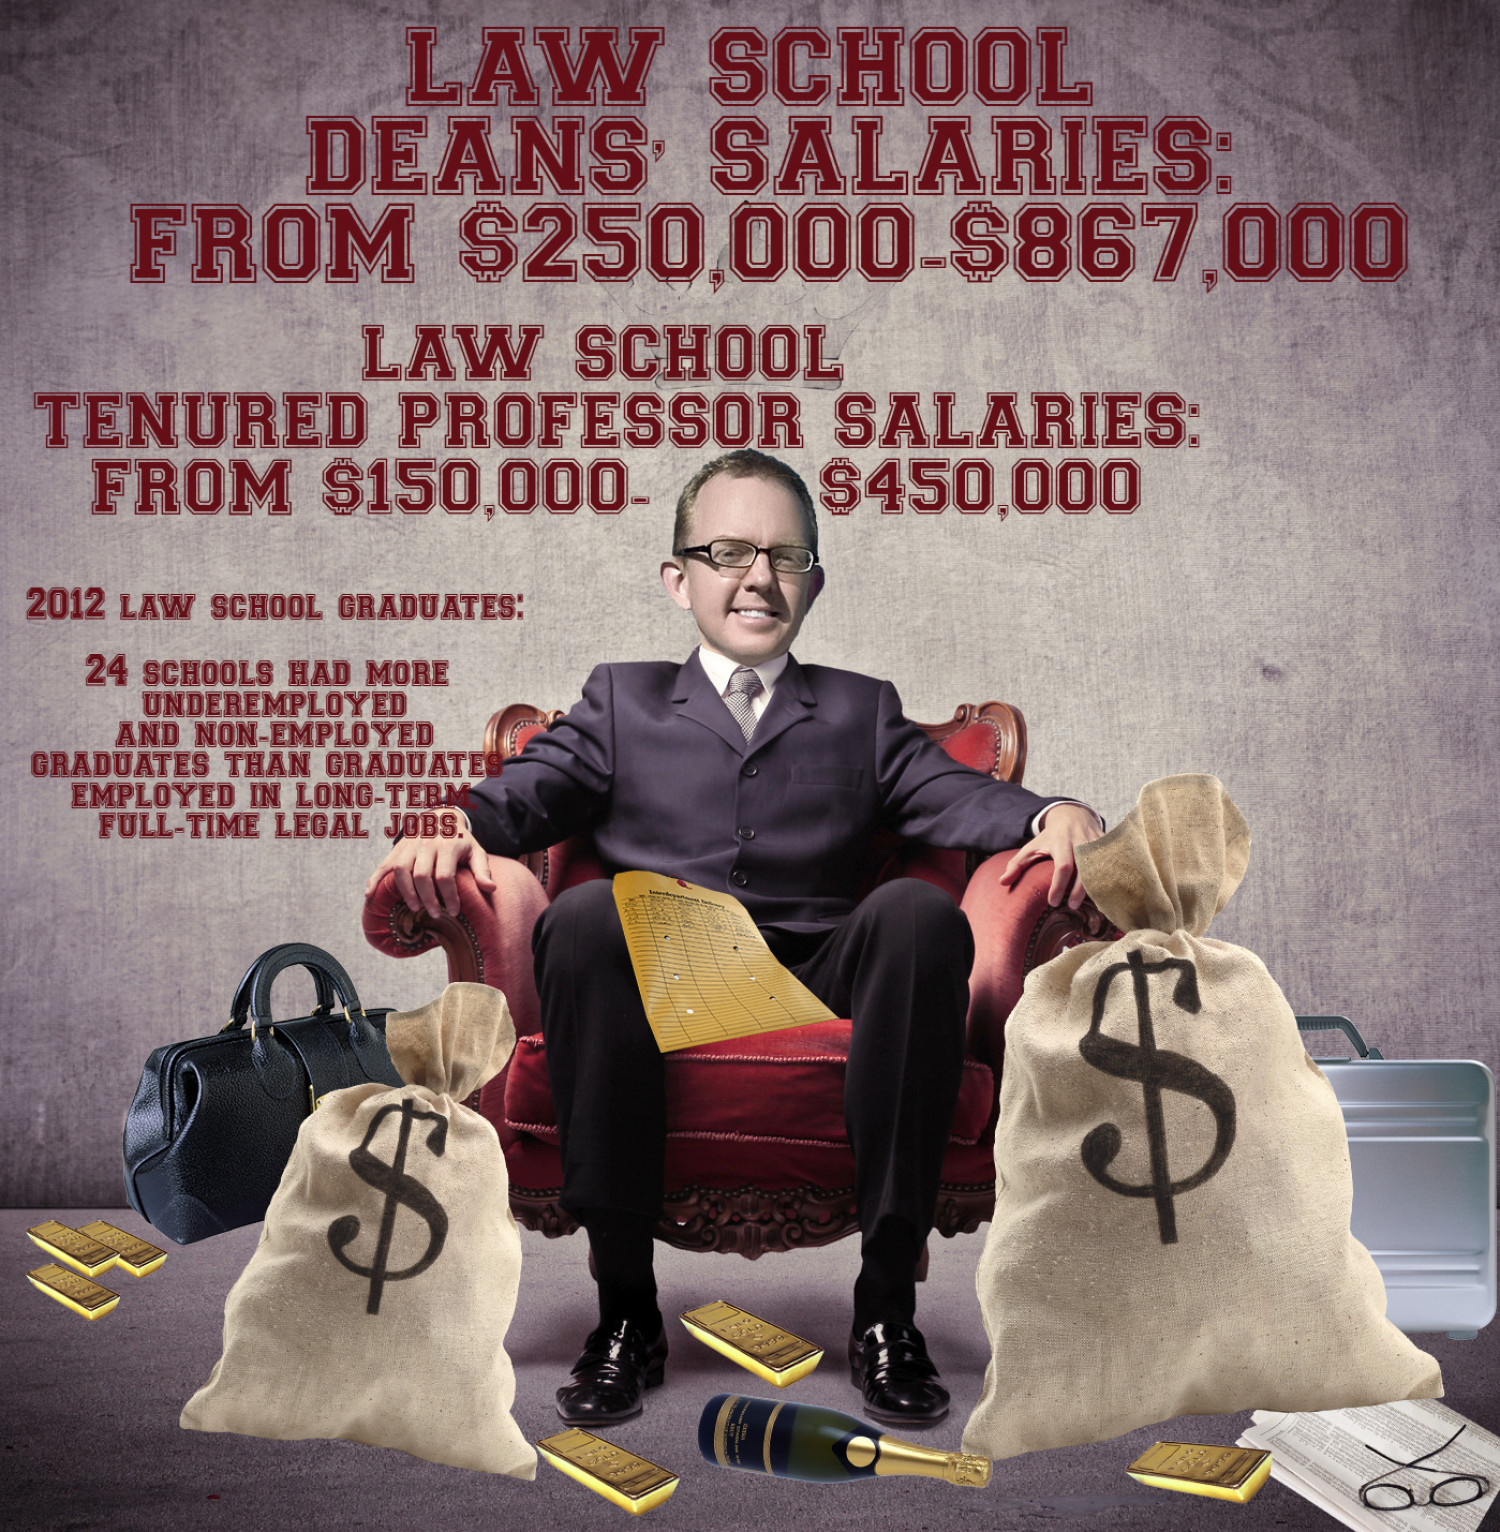 LAW SCHOOL PROFESSOR AND DEAN SALARIES INFOGRAPHIC Infographic